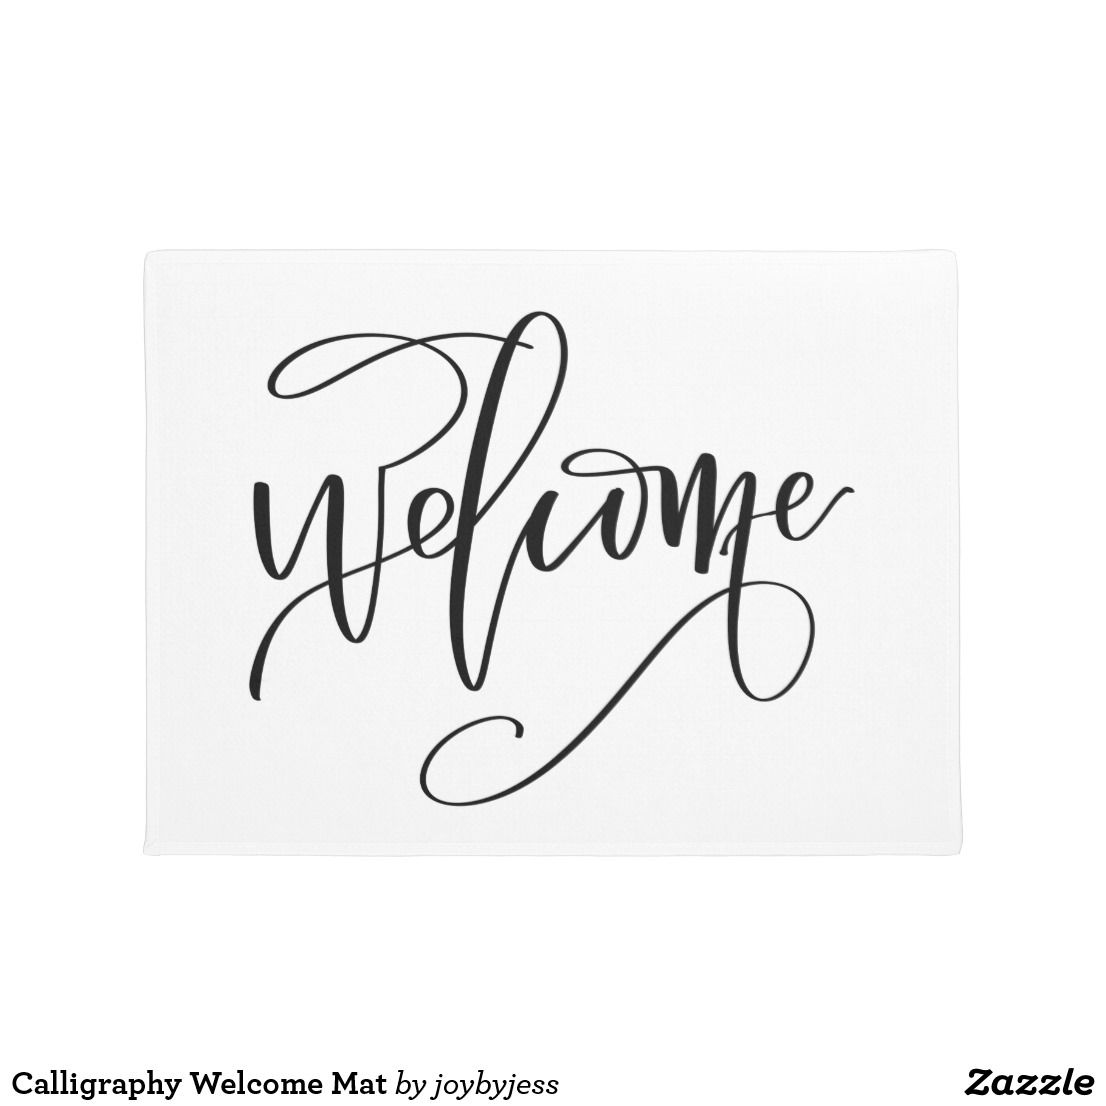 Calligraphy Welcome Mat Zazzle Com In 2020 Calligraphy Welcome Calligraphy Calligraphy Print